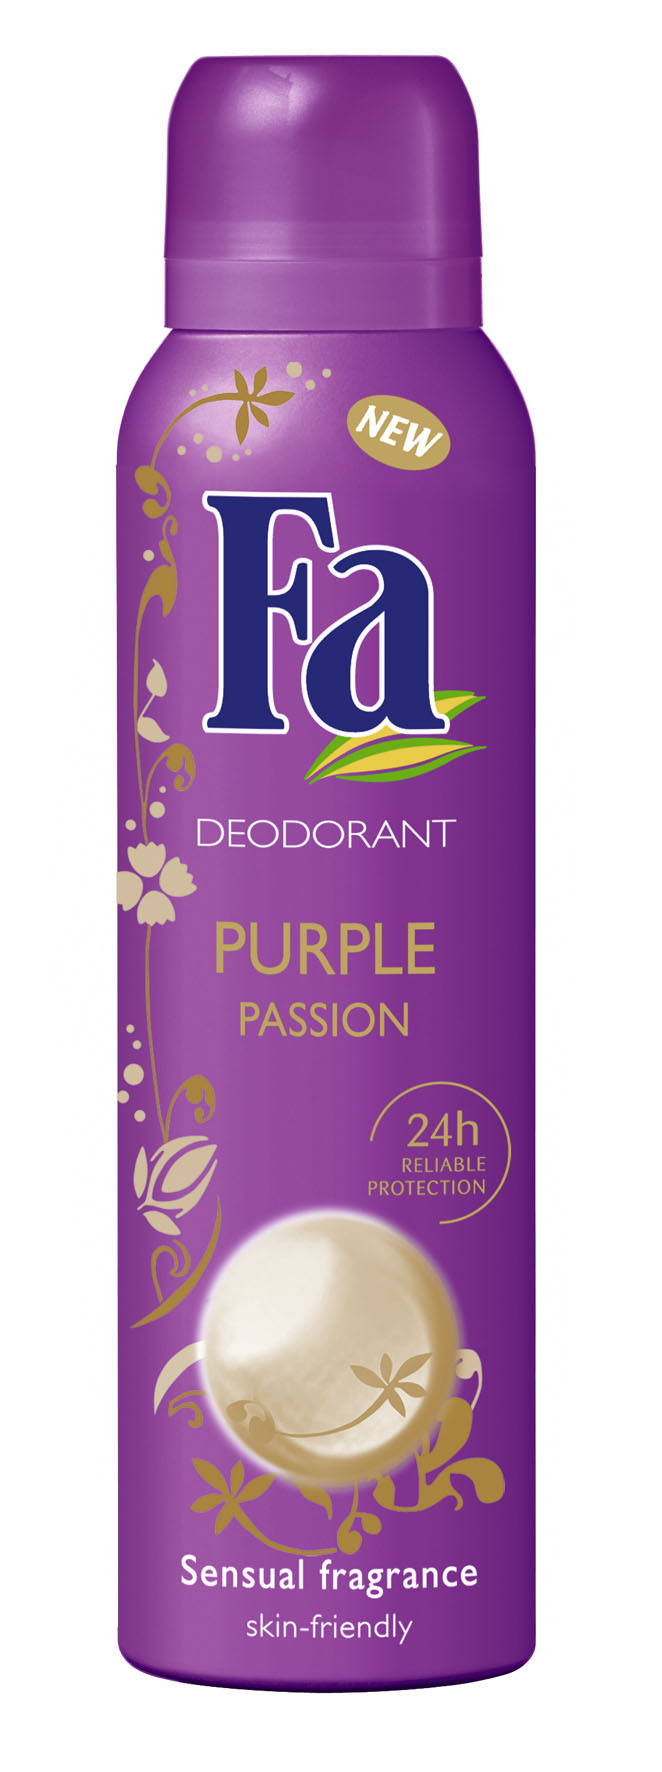 5. Fa purple Passion, ok. 9 zł